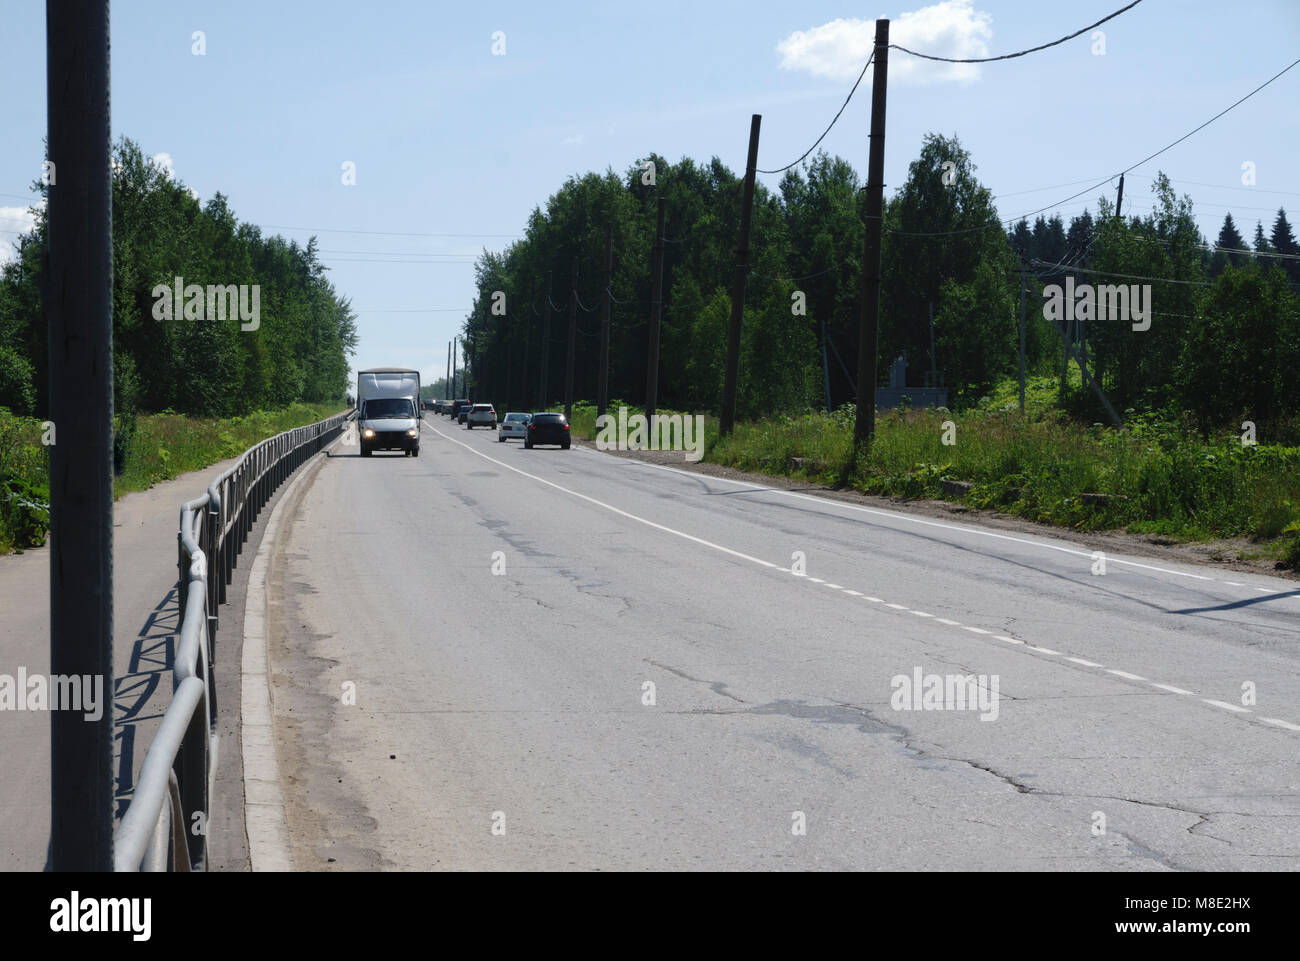 Traffic on a busy highway - Stock Image